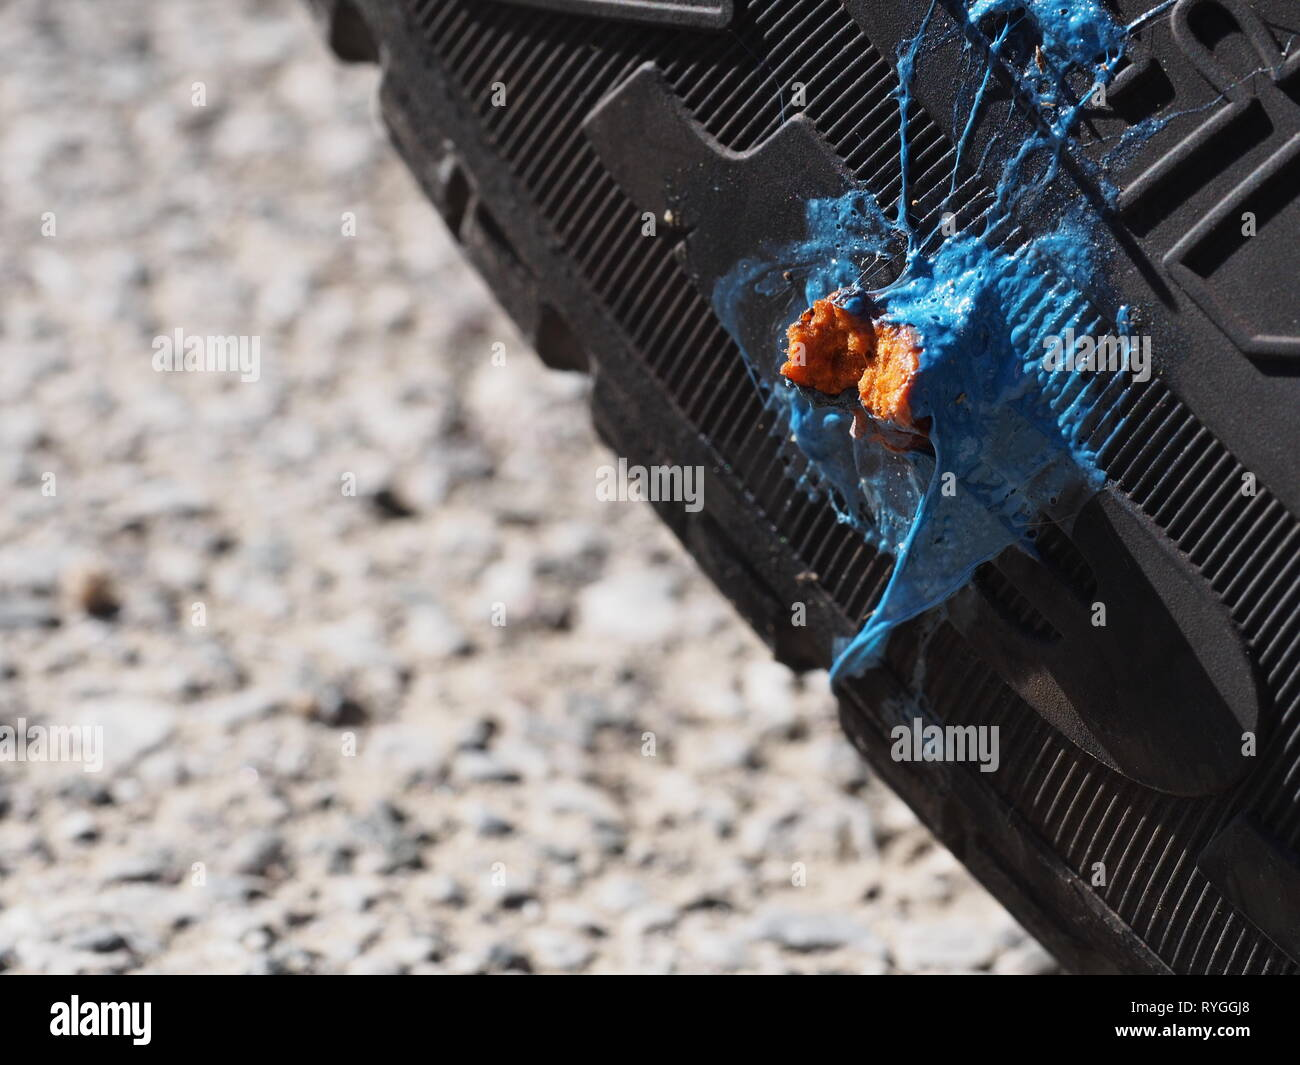 MASSA CARRARA, ITALY MARCH 12 15, 2019: Car tyre puncture repair, not beautiful but a practical solution to thorn stuck in side. - Stock Image